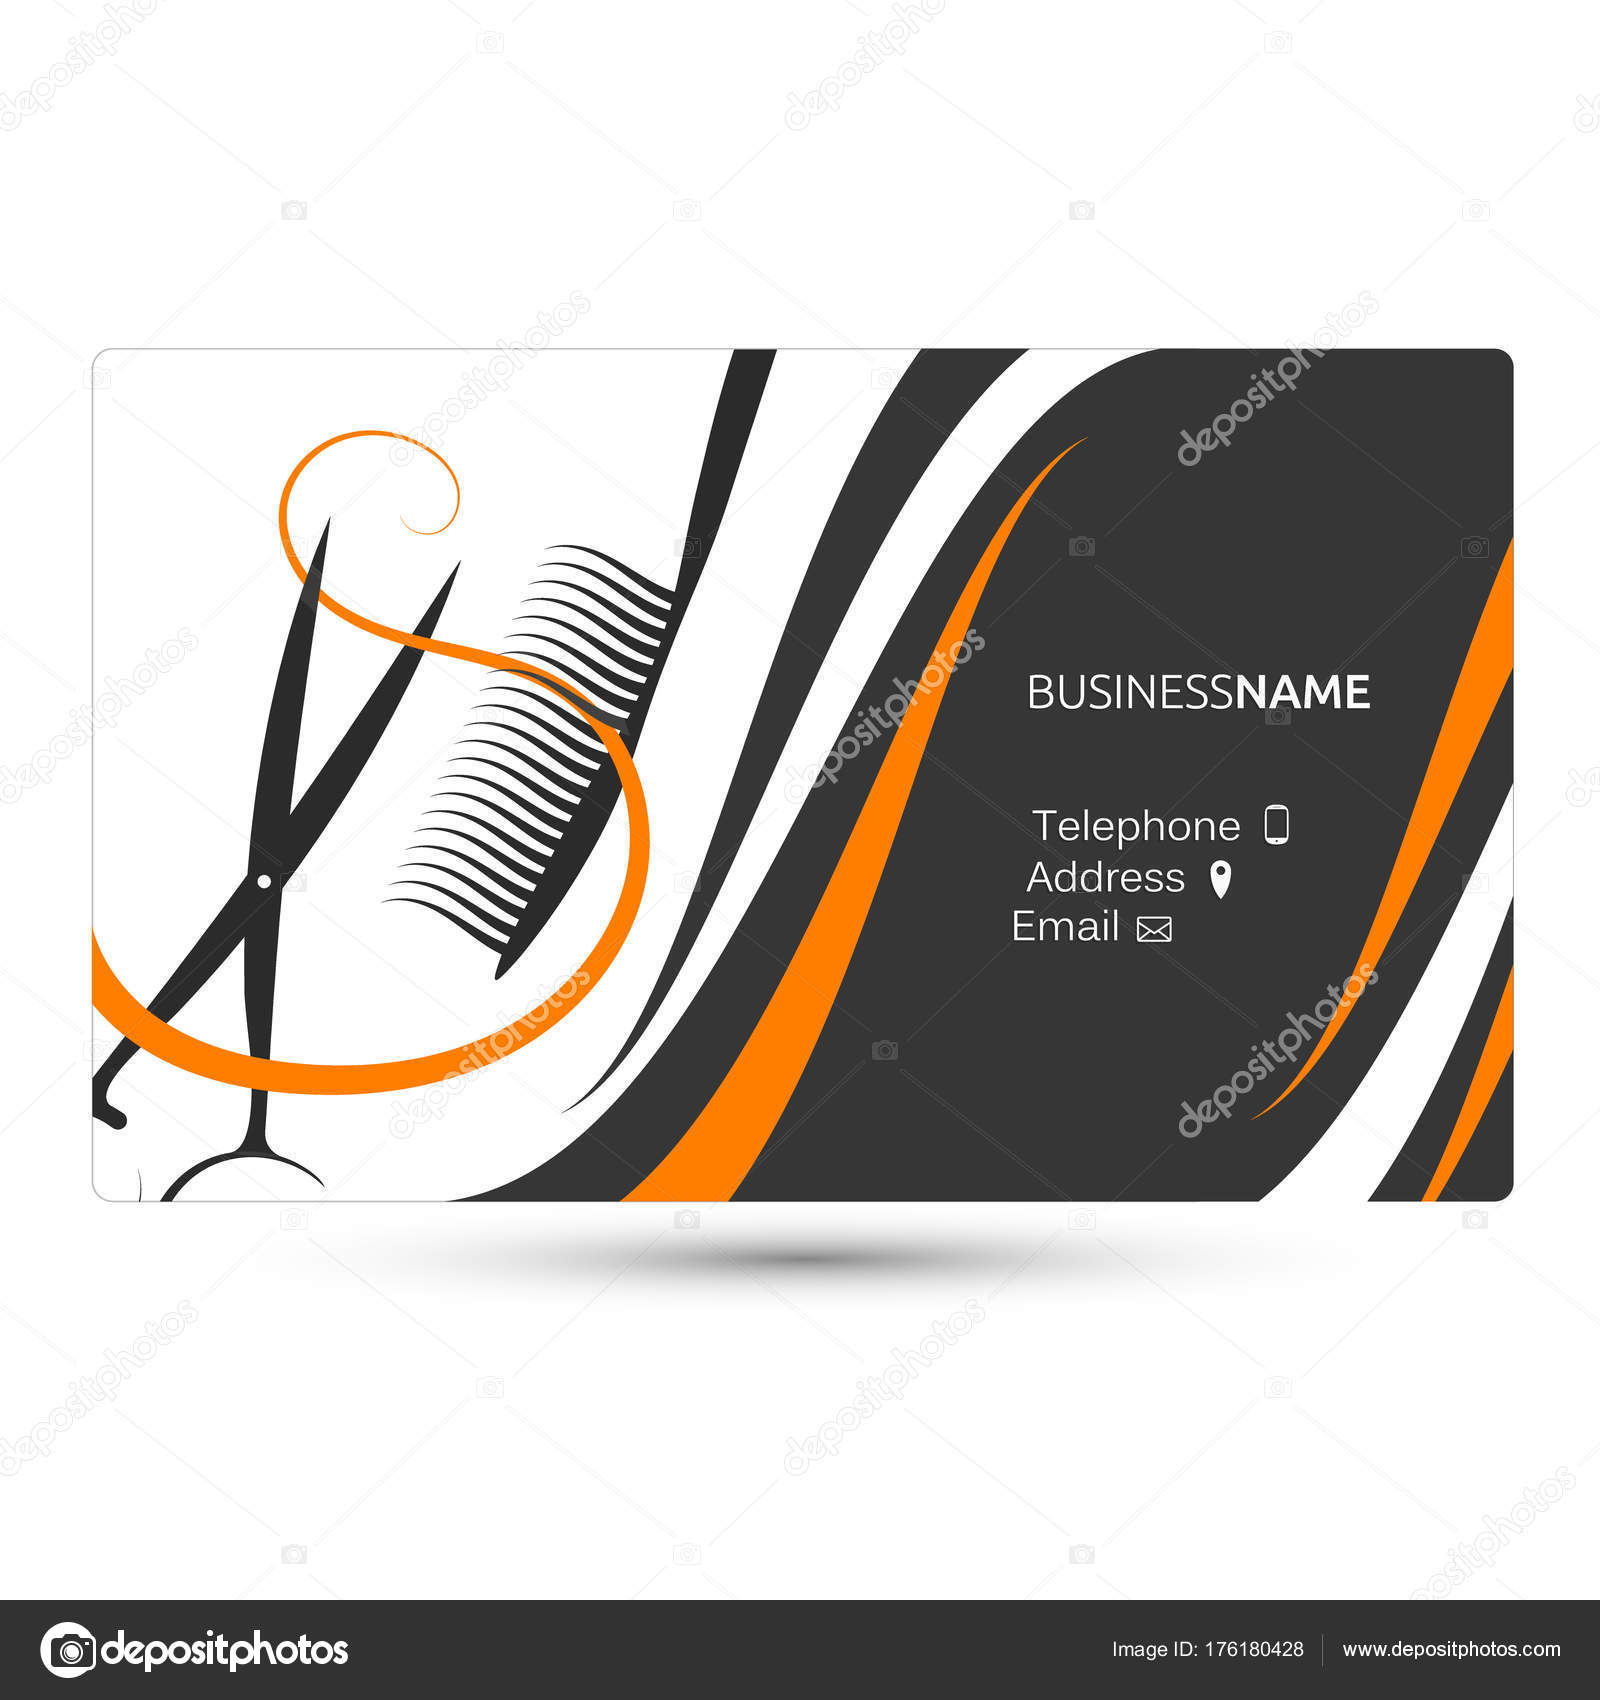 Hairdressing salon business card — Stock Vector © john1279 #176180428